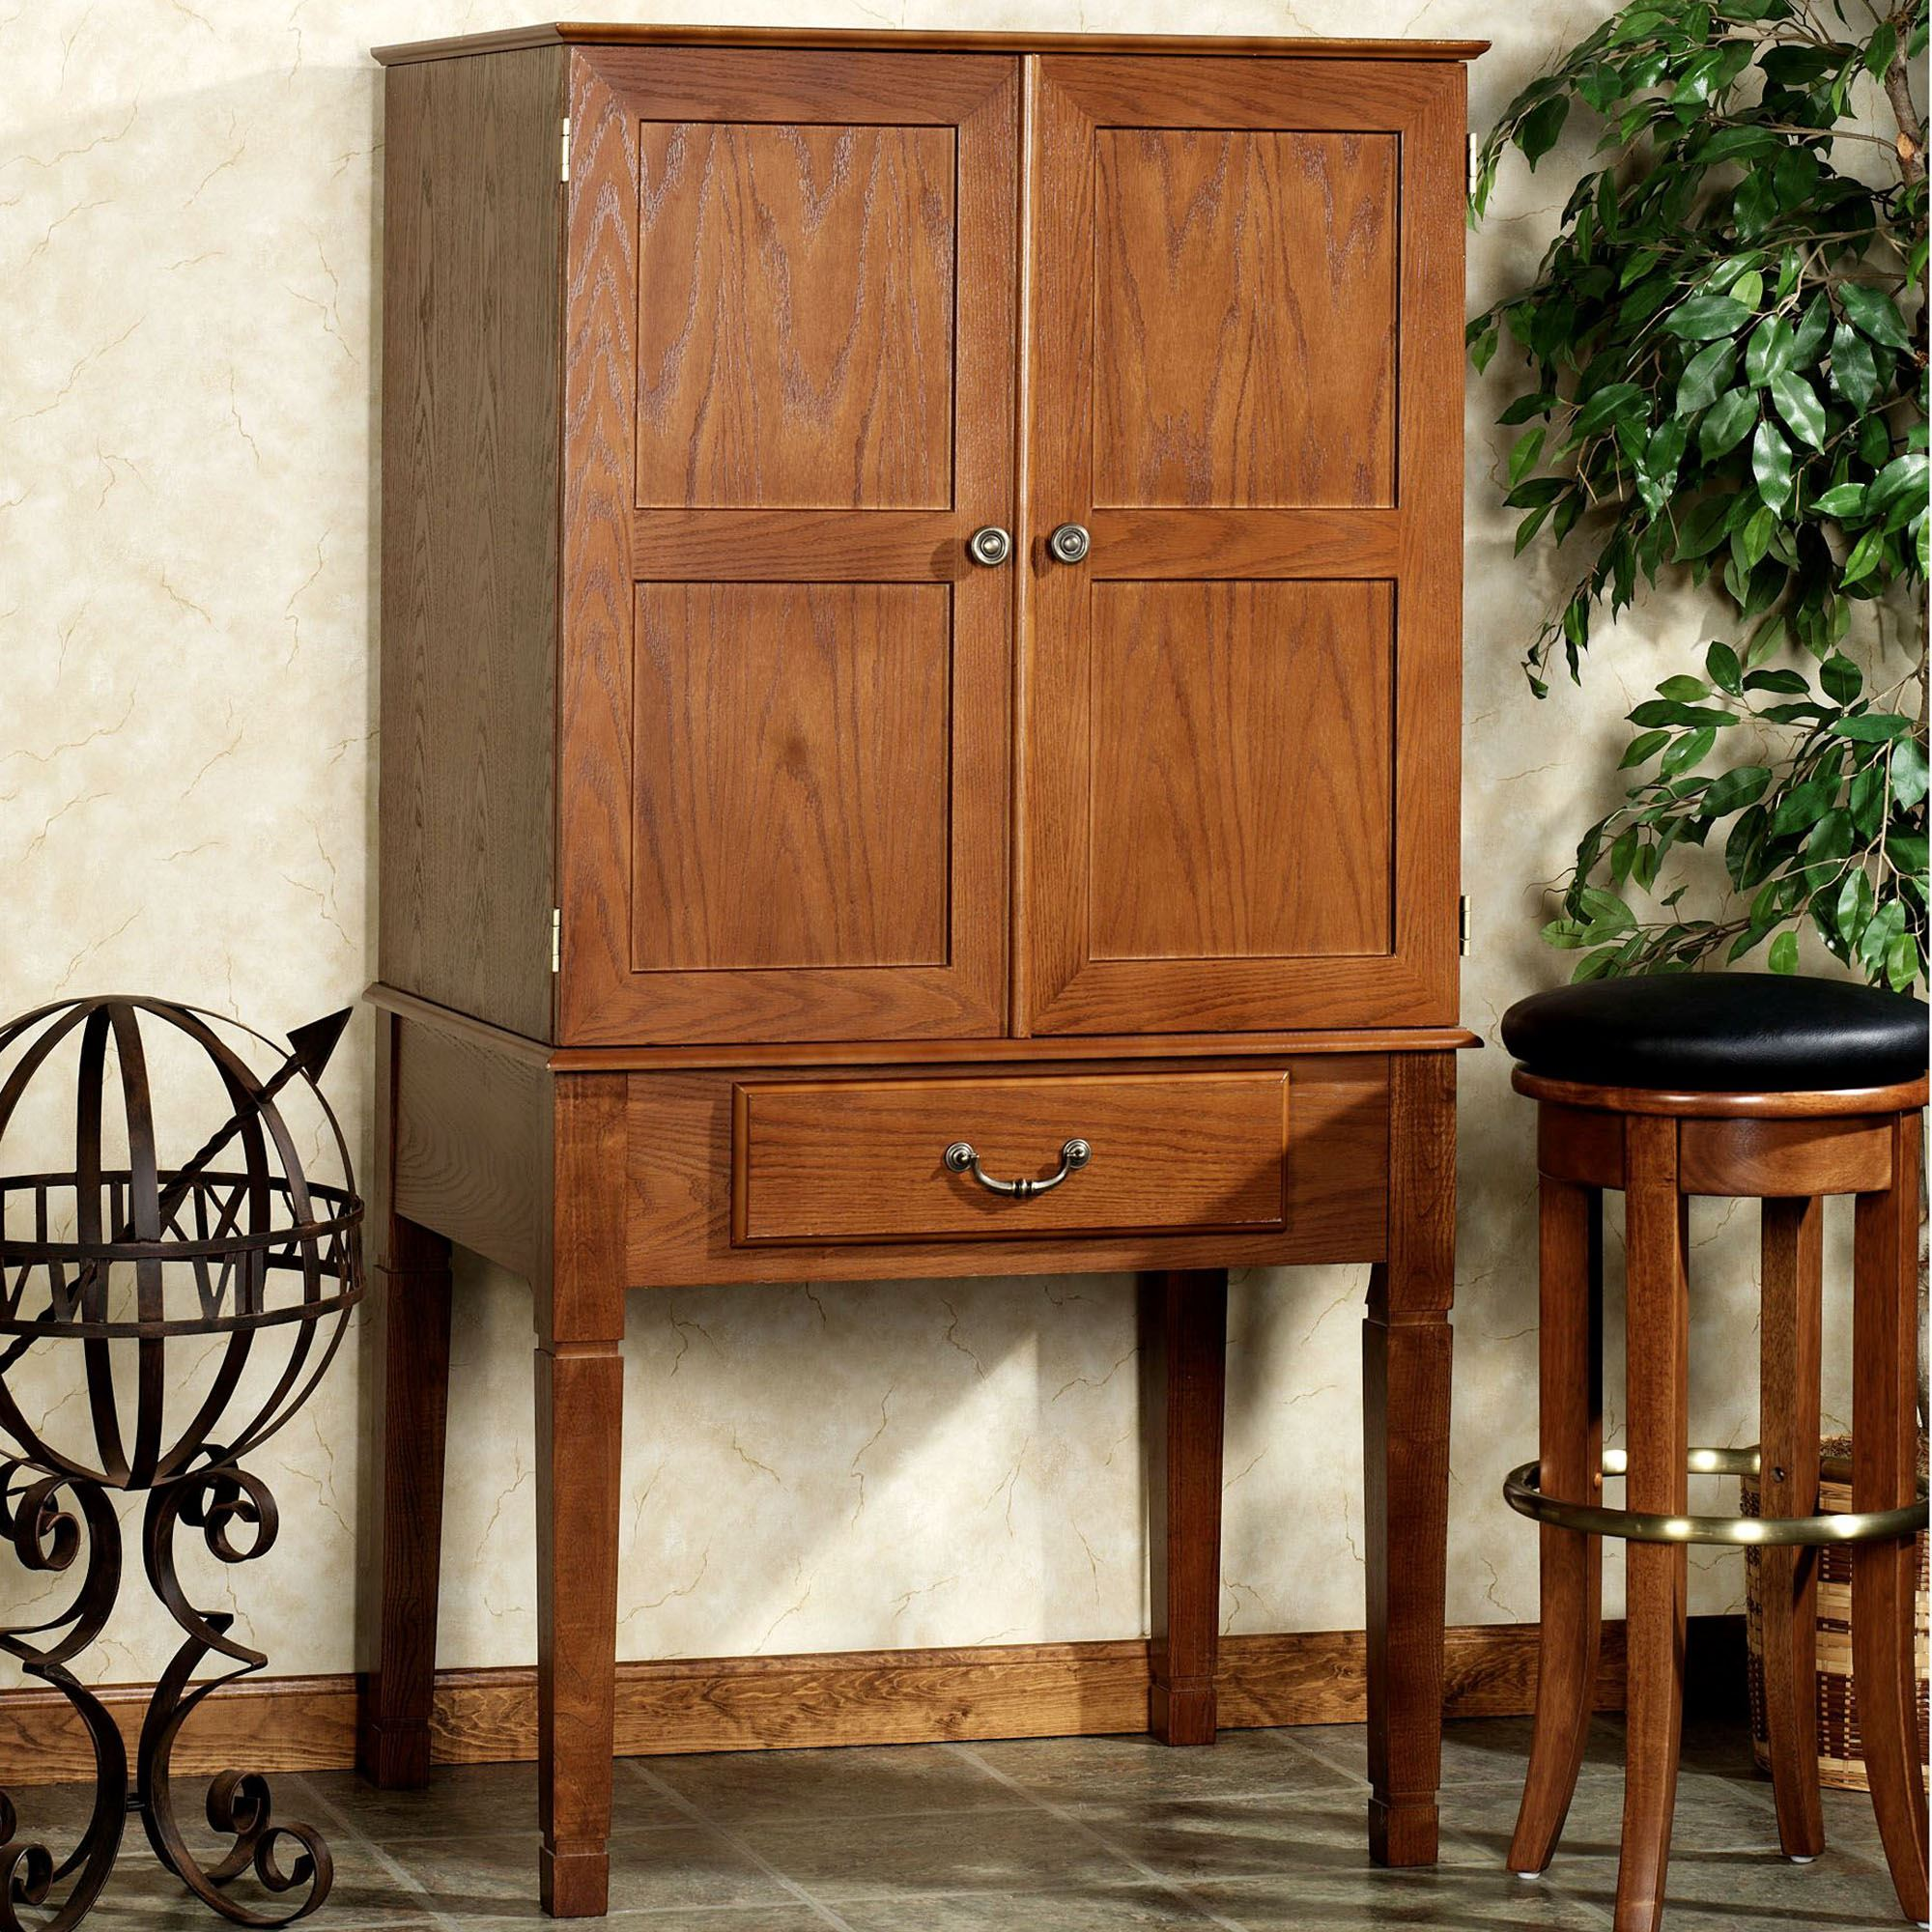 Superb Kenton TV Armoire